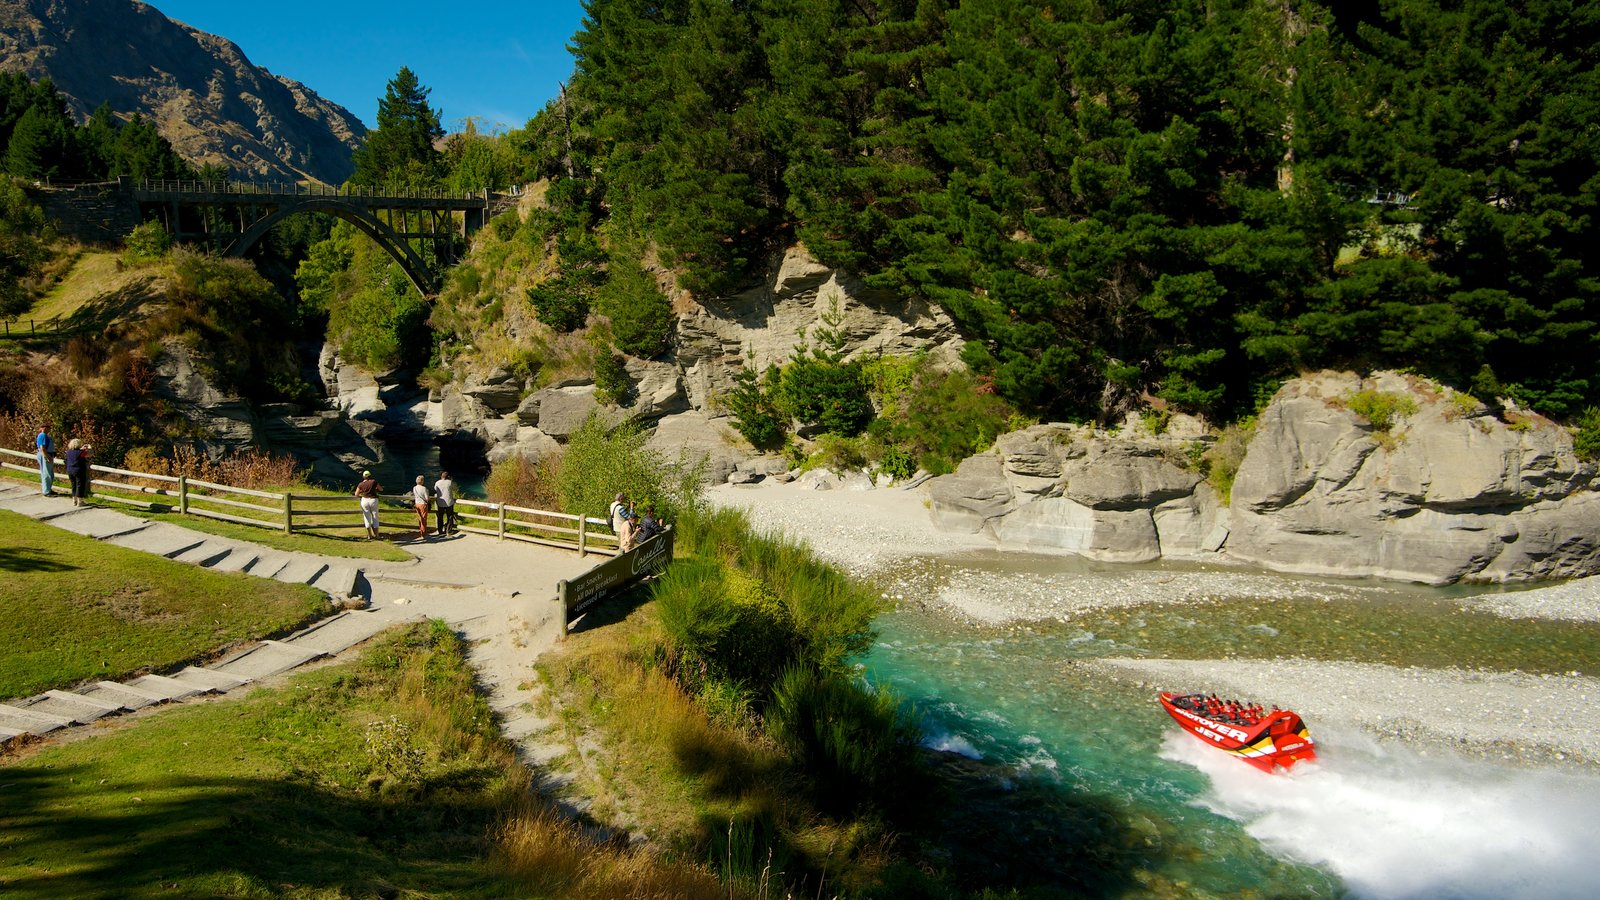 Queenstown which includes rocky coastline, boating and rides